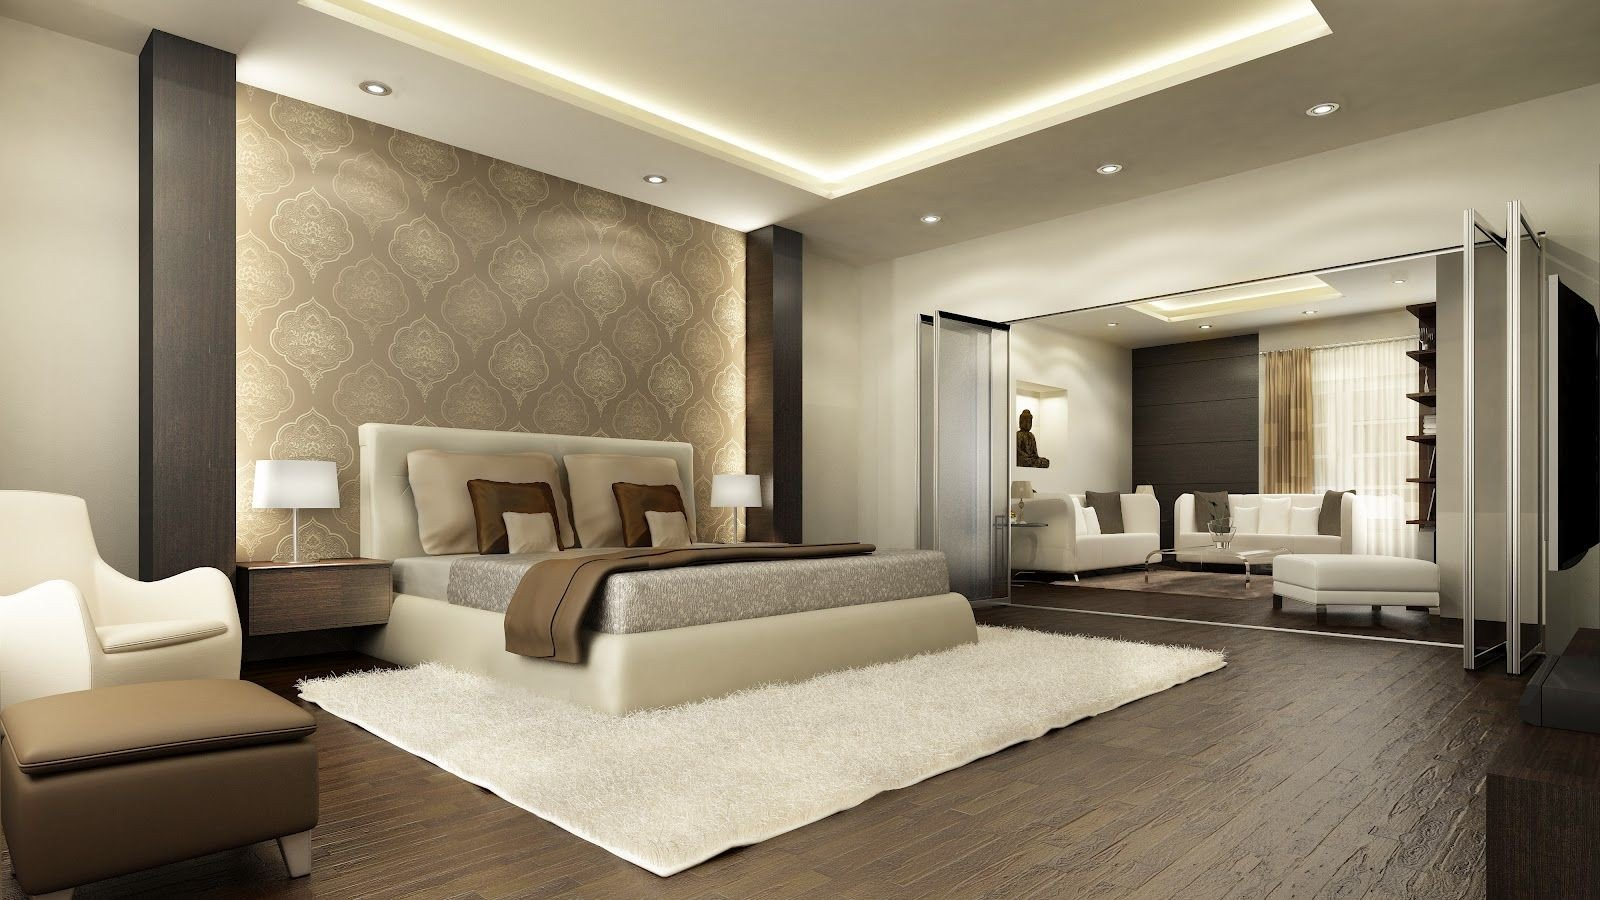 How to Decorate A Large Bedroom Inspirational Master Bedroom Interior Design Decorating Ideas In Luxury